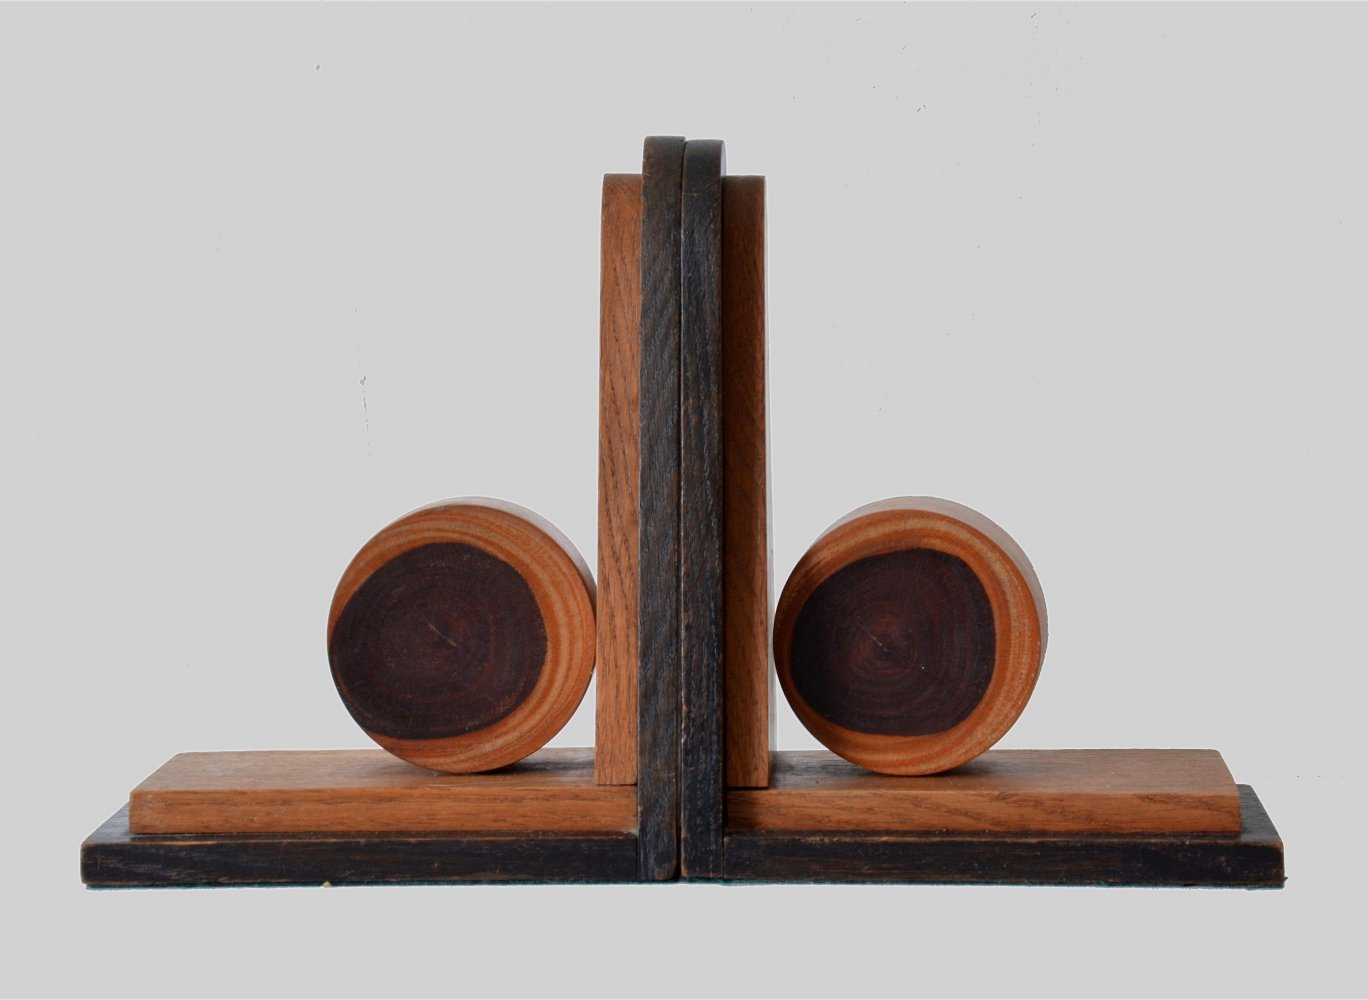 Pair of Art Deco Amsterdamse School bookends, 1930s